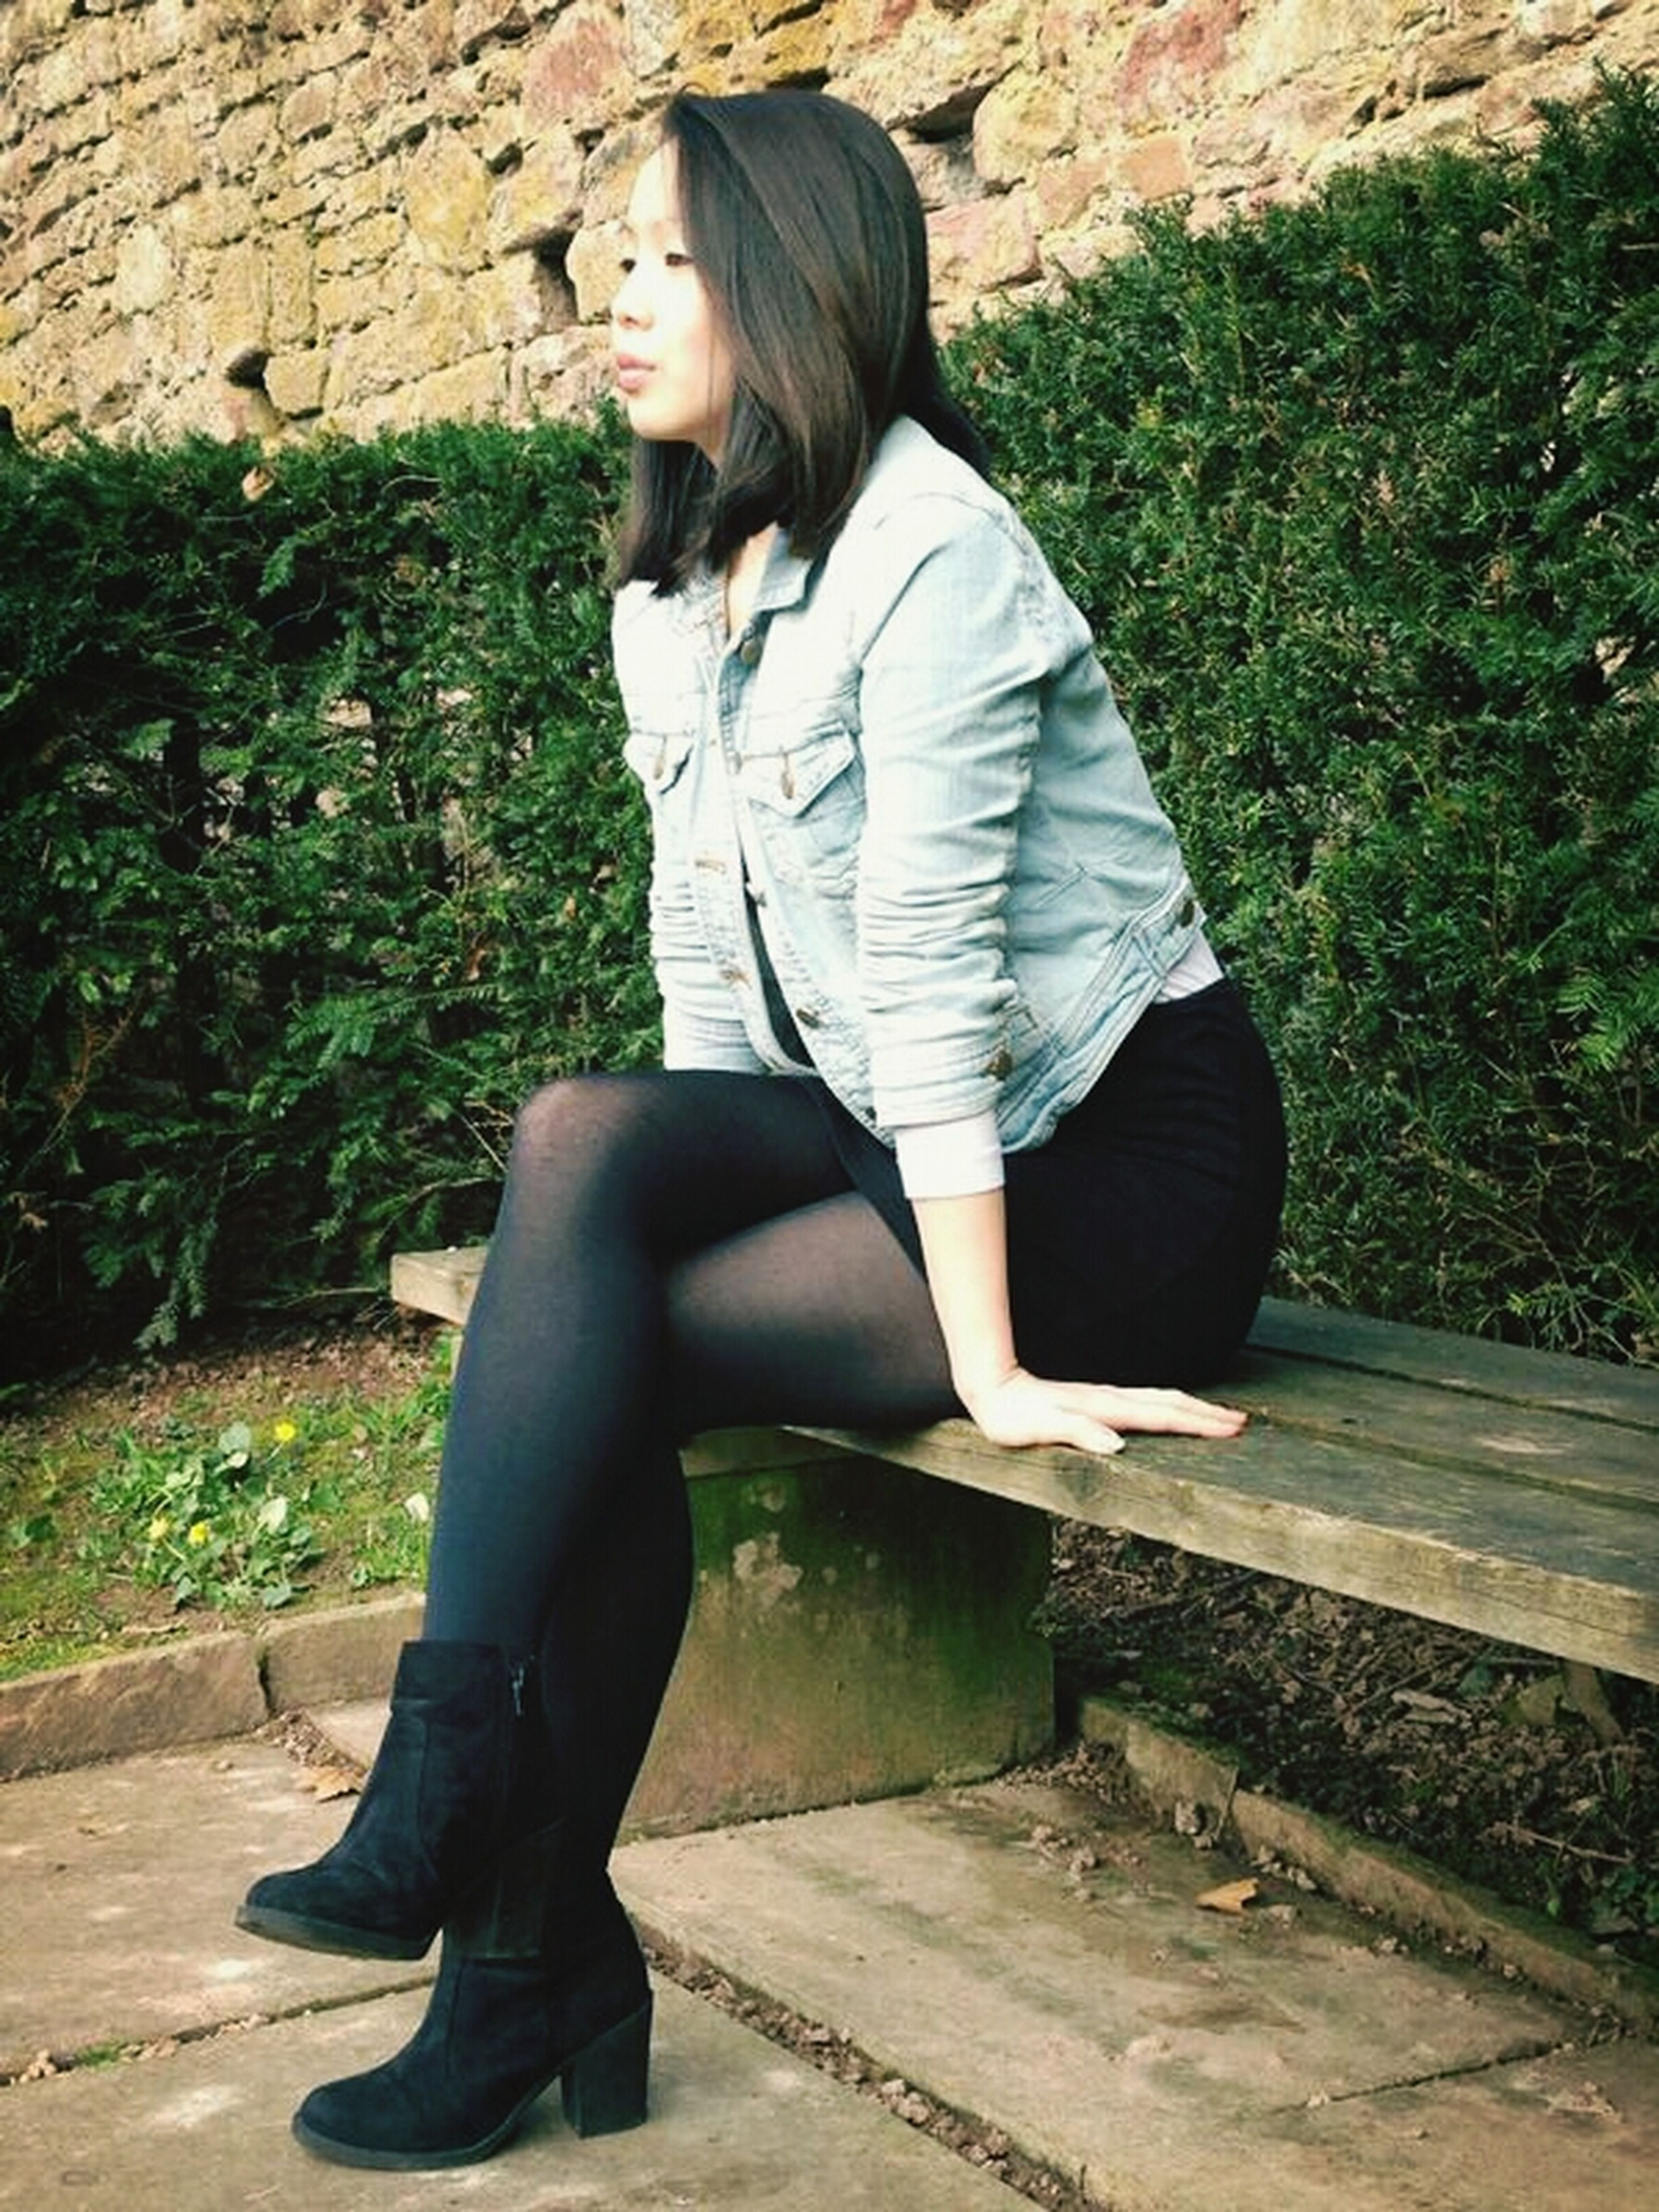 casual clothing, lifestyles, young adult, full length, person, standing, leisure activity, young women, three quarter length, front view, side view, long hair, sitting, leaning, day, looking away, jacket